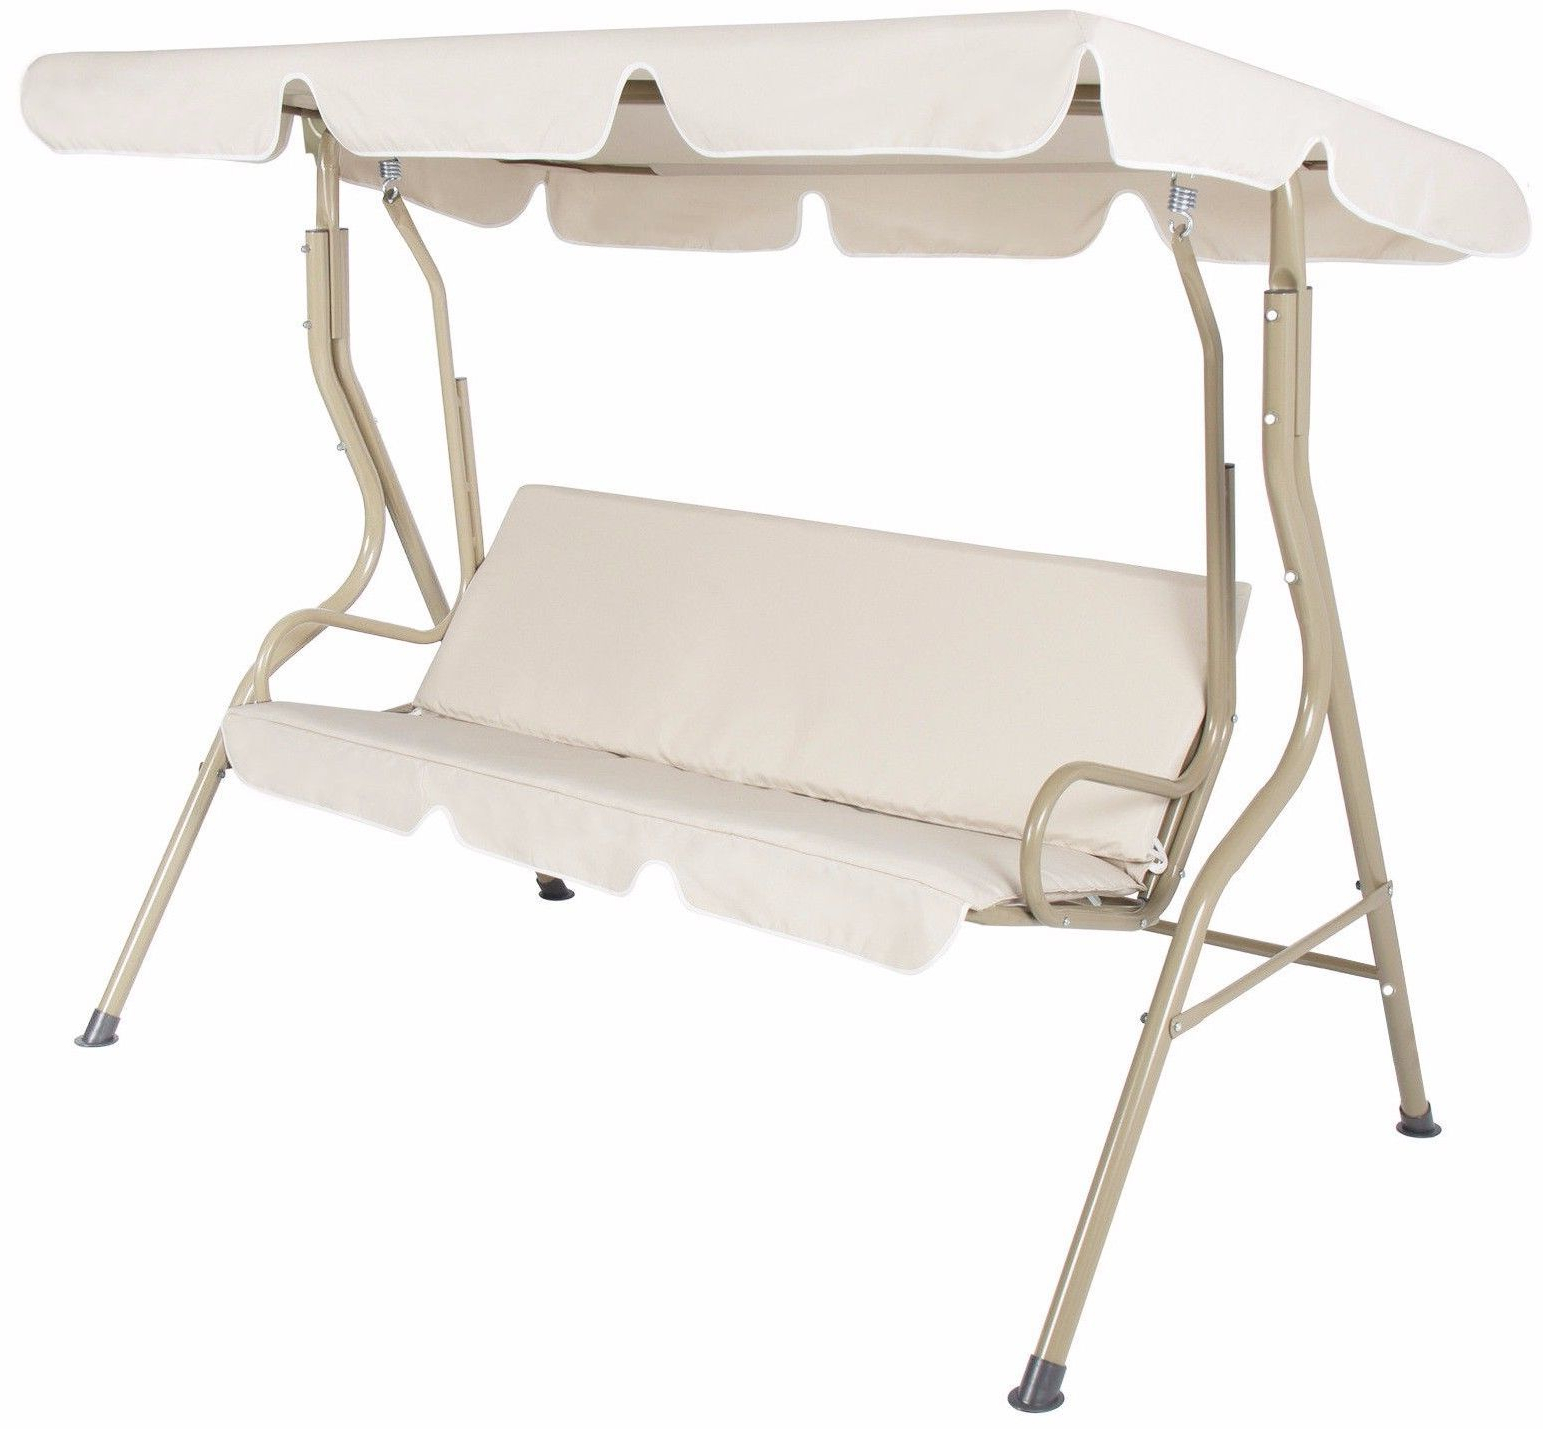 2 Person Outdoor Convertible Canopy Swing Gliders With Removable Cushions Beige Within Most Recent Outdoor 2 Person Canopy Swing Glider Hammock Patio Furniture (View 11 of 25)